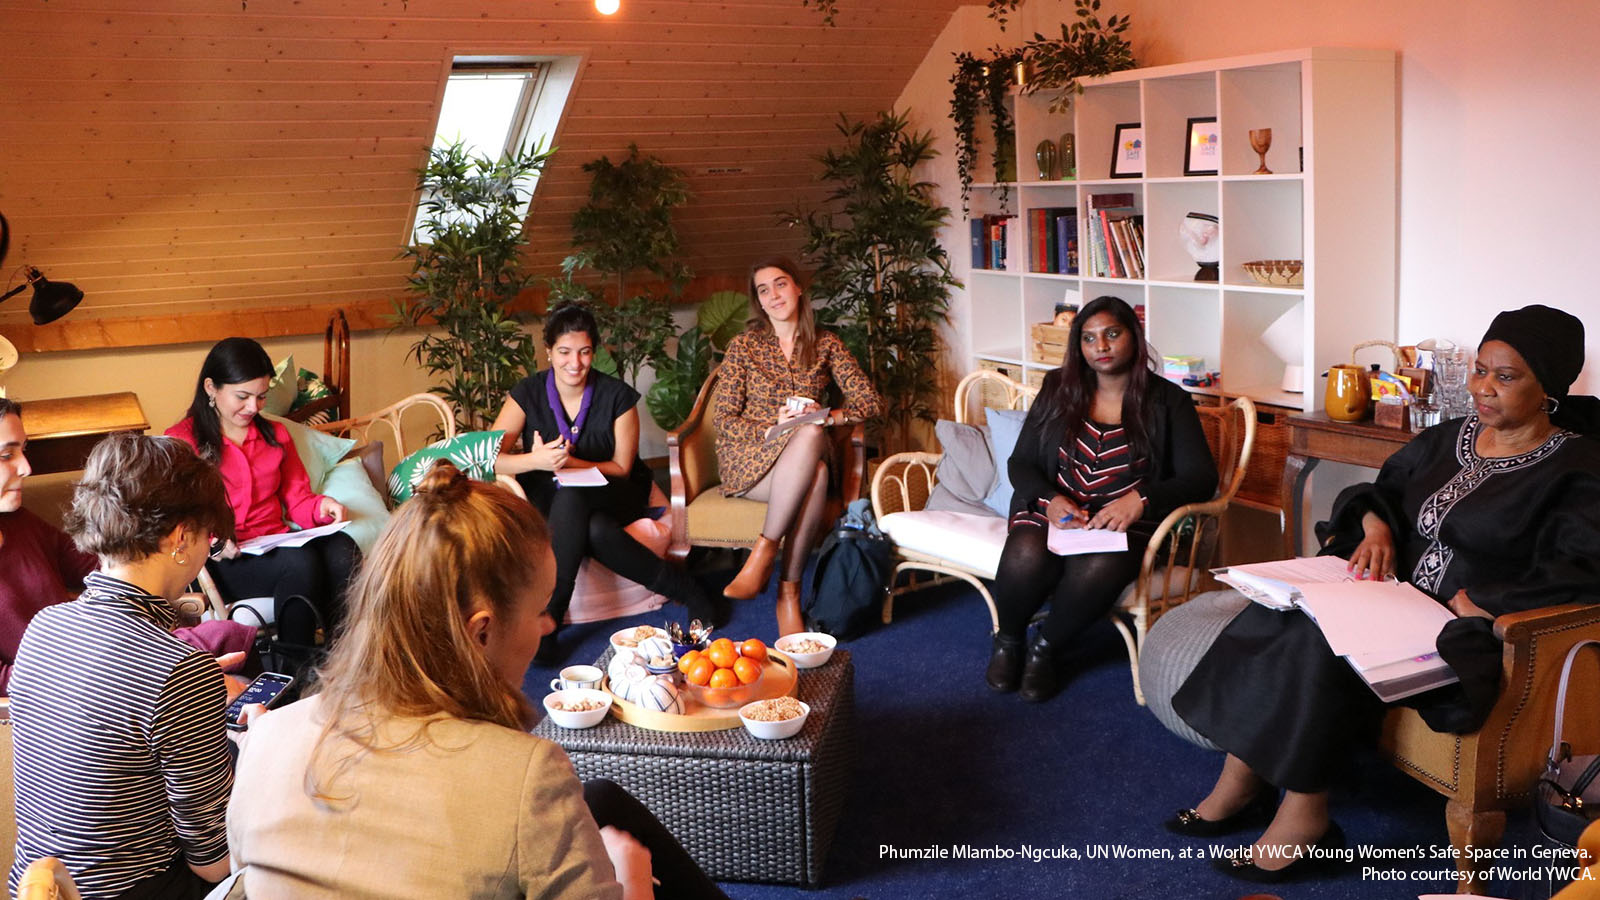 Phumzile Mlambo-Ngcuka, UN Women, at a World YWCA Young Women's Safe Space in Geneva. Photo courtesy of World YWCA.